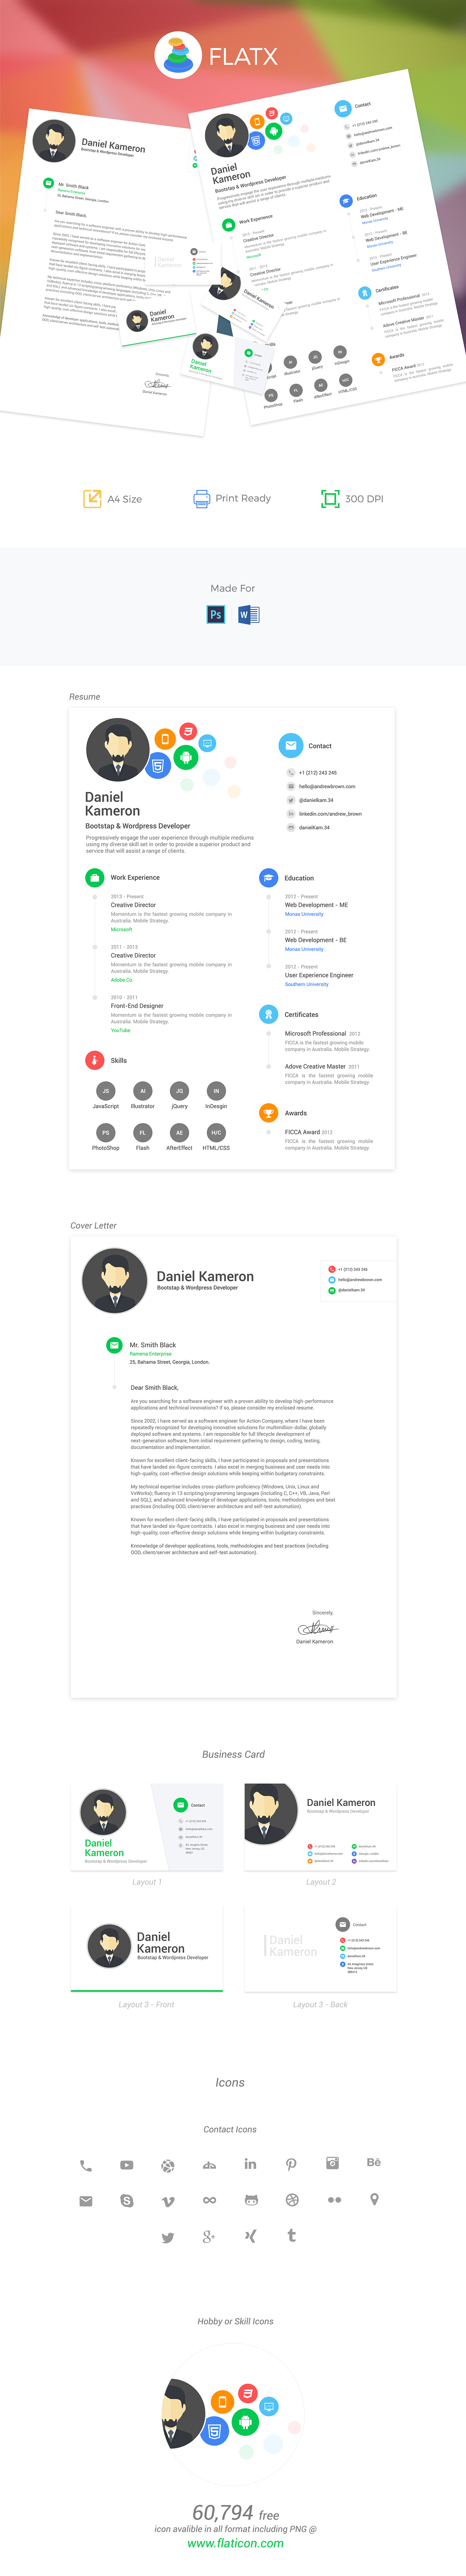 flat multicolor designer resume template with cover letter and 3 different layout business cards